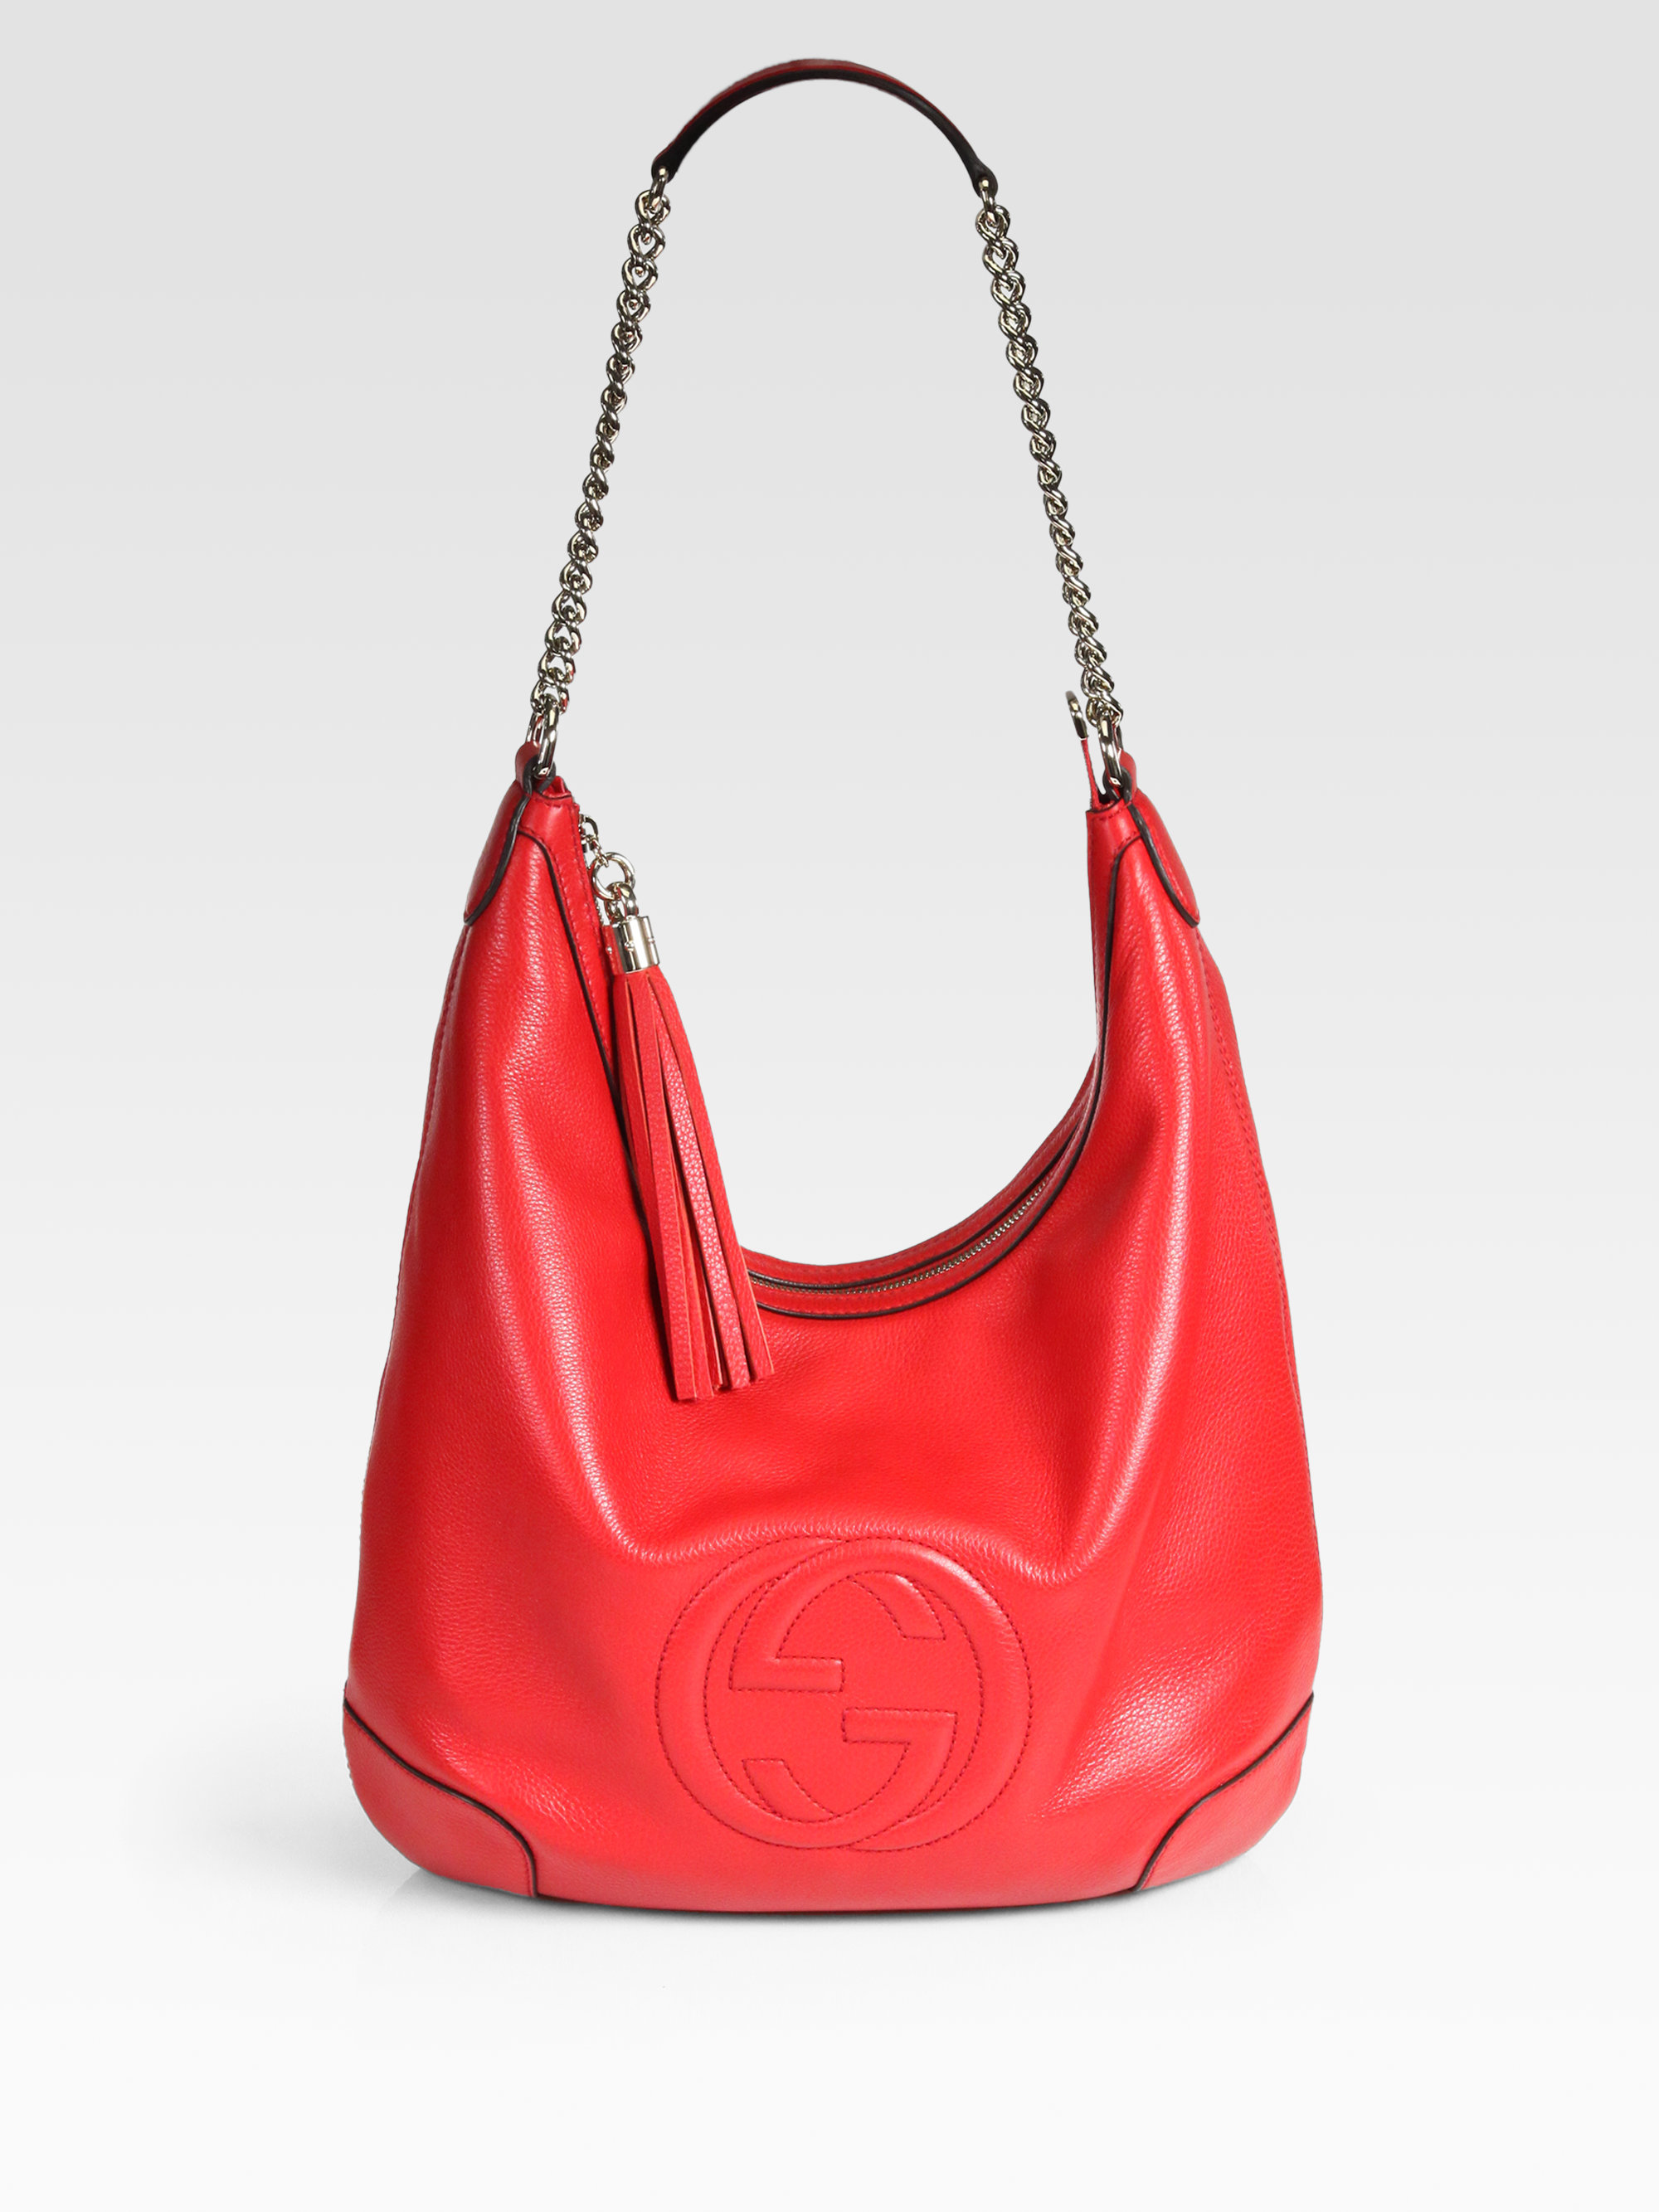 Gucci Soho Leather Chain Hobo Bag in Red | Lyst